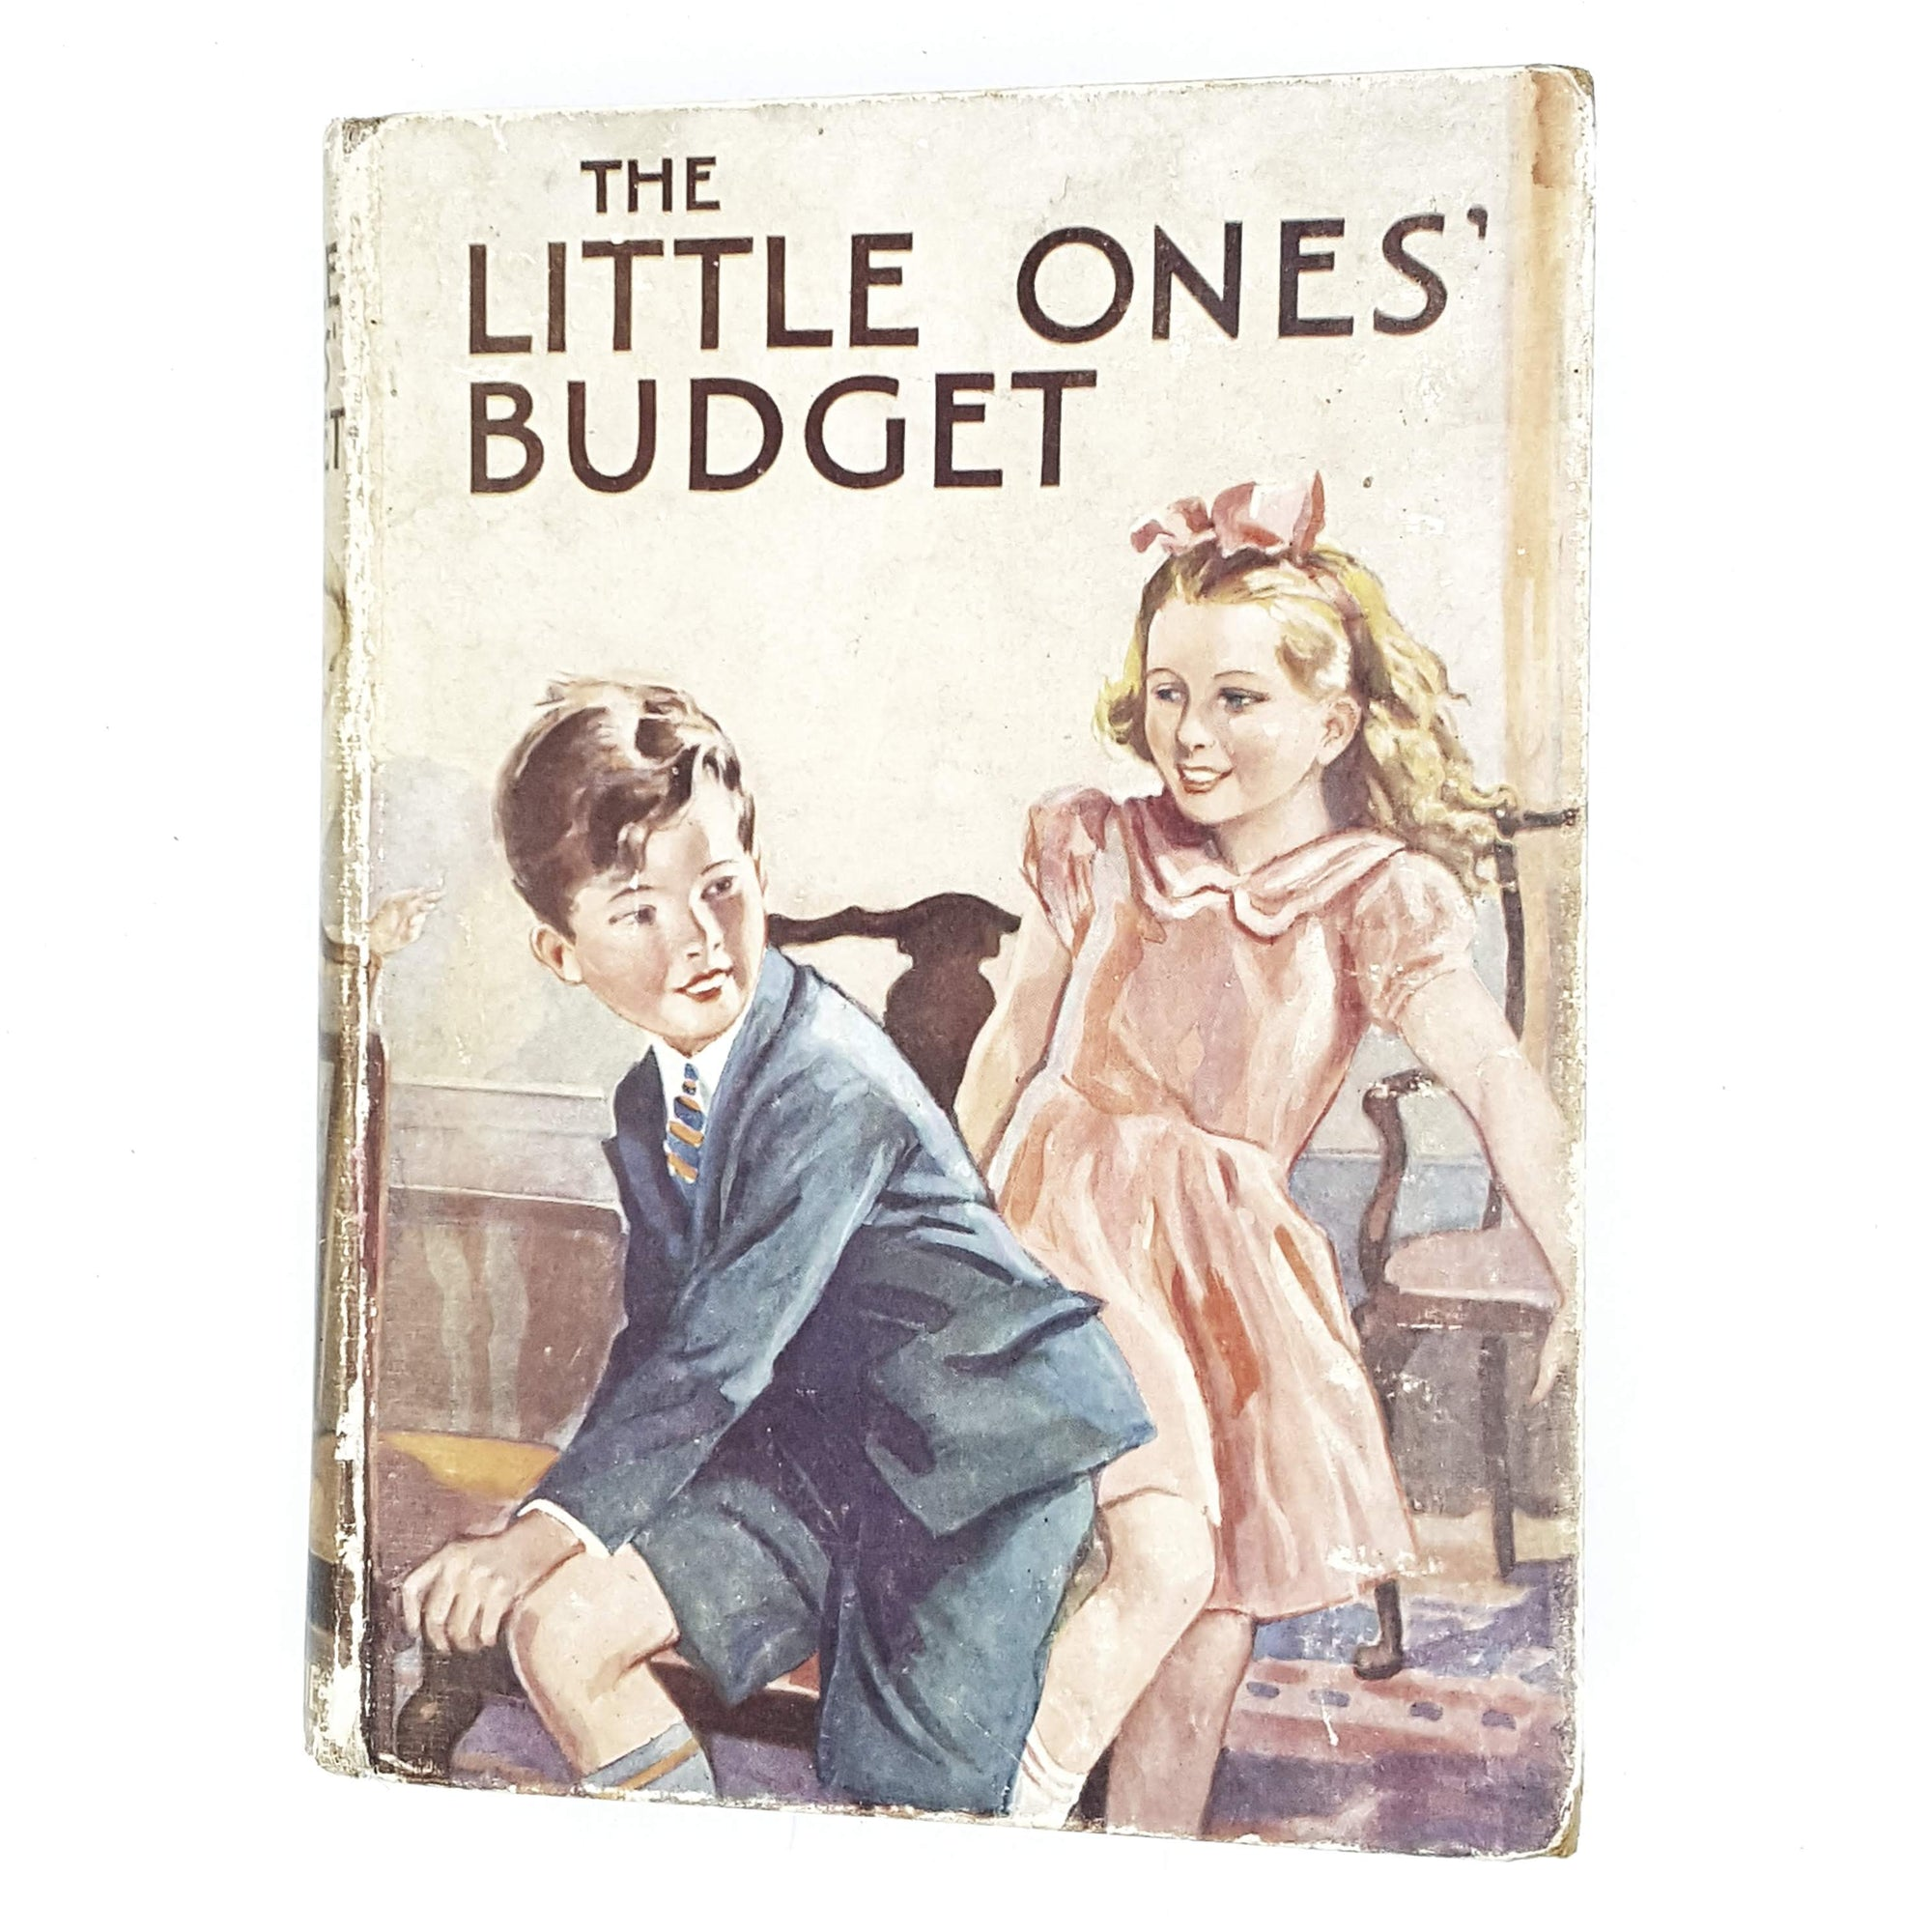 Illustrated The Little One's Budget